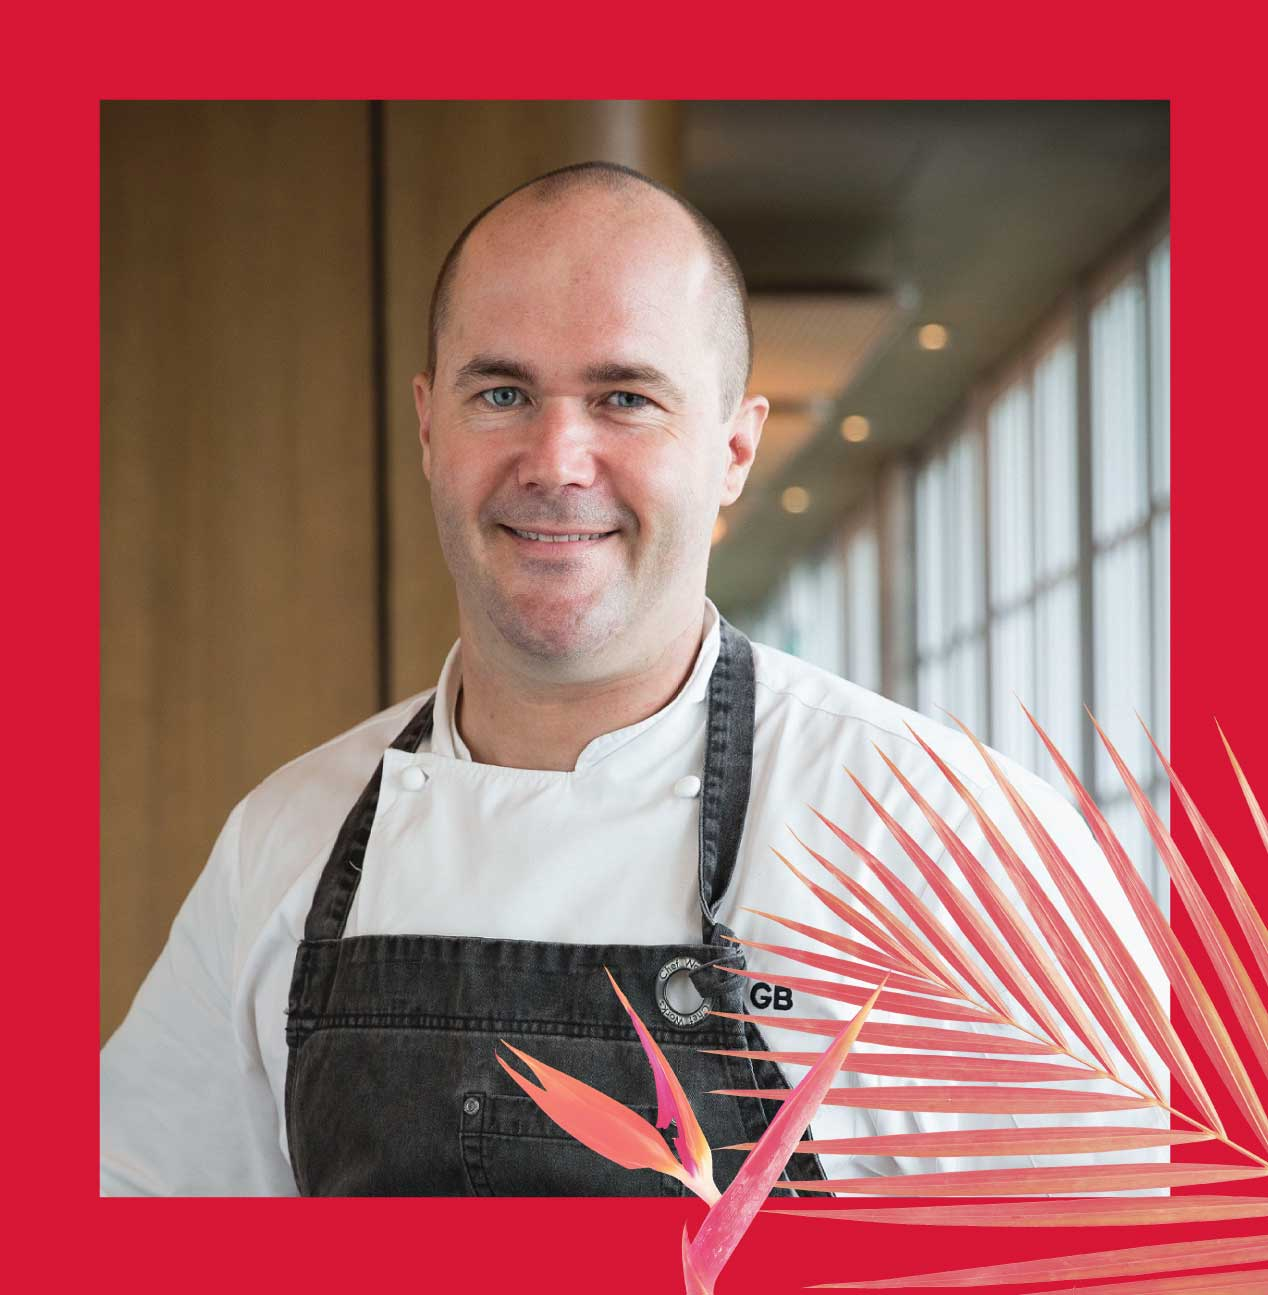 Chef-Photo-Frame-04-Greg Bess.jpg